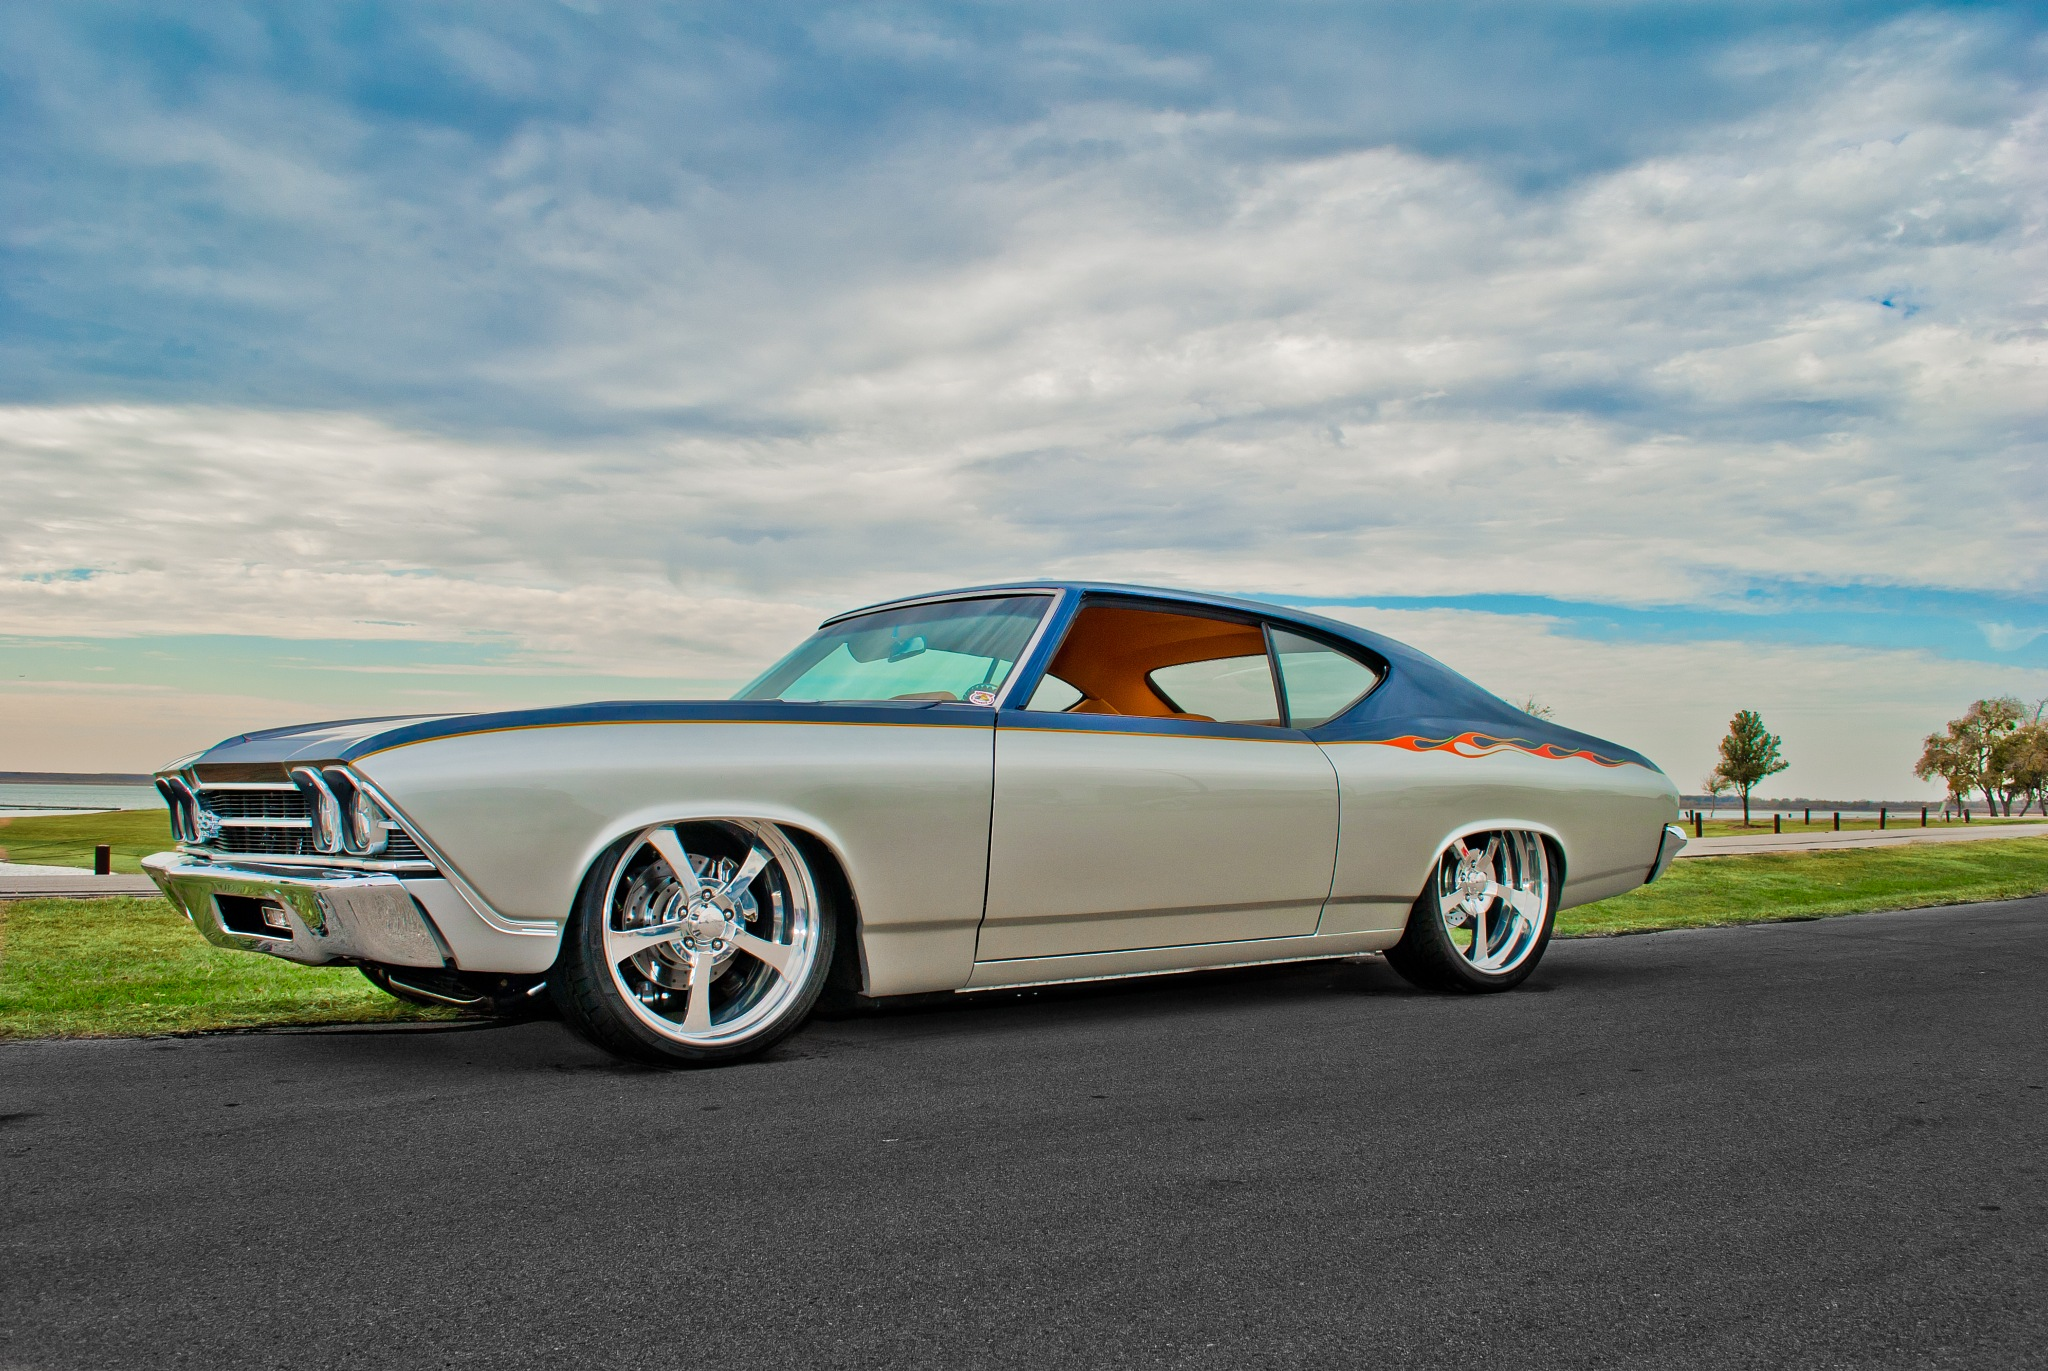 69 Chevy  by Maxphotog